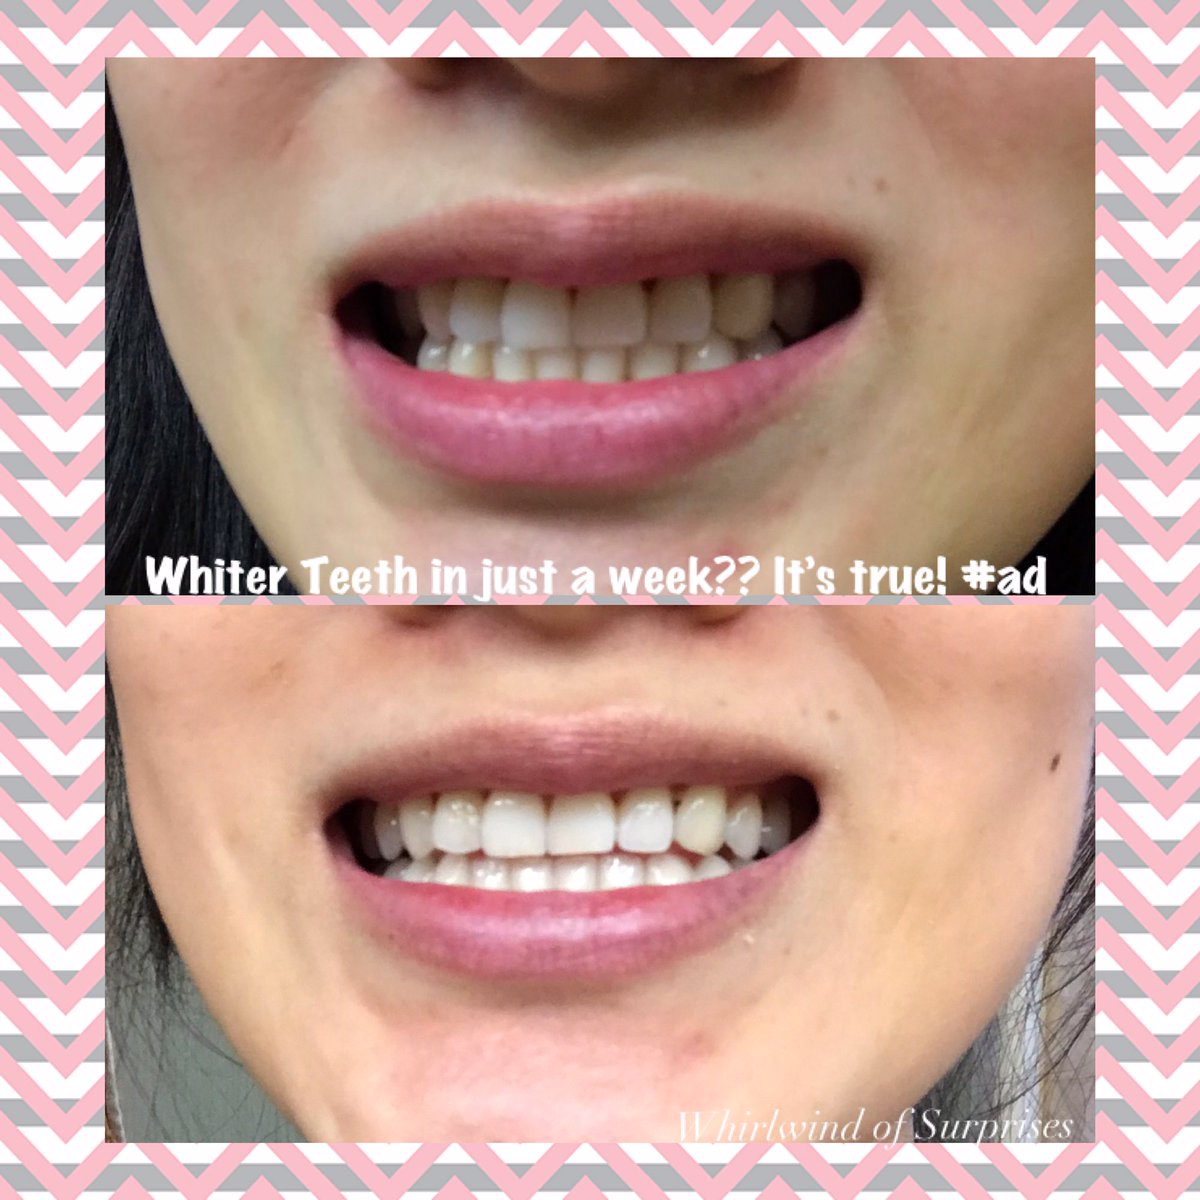 How to get whiter teeth in 1 week